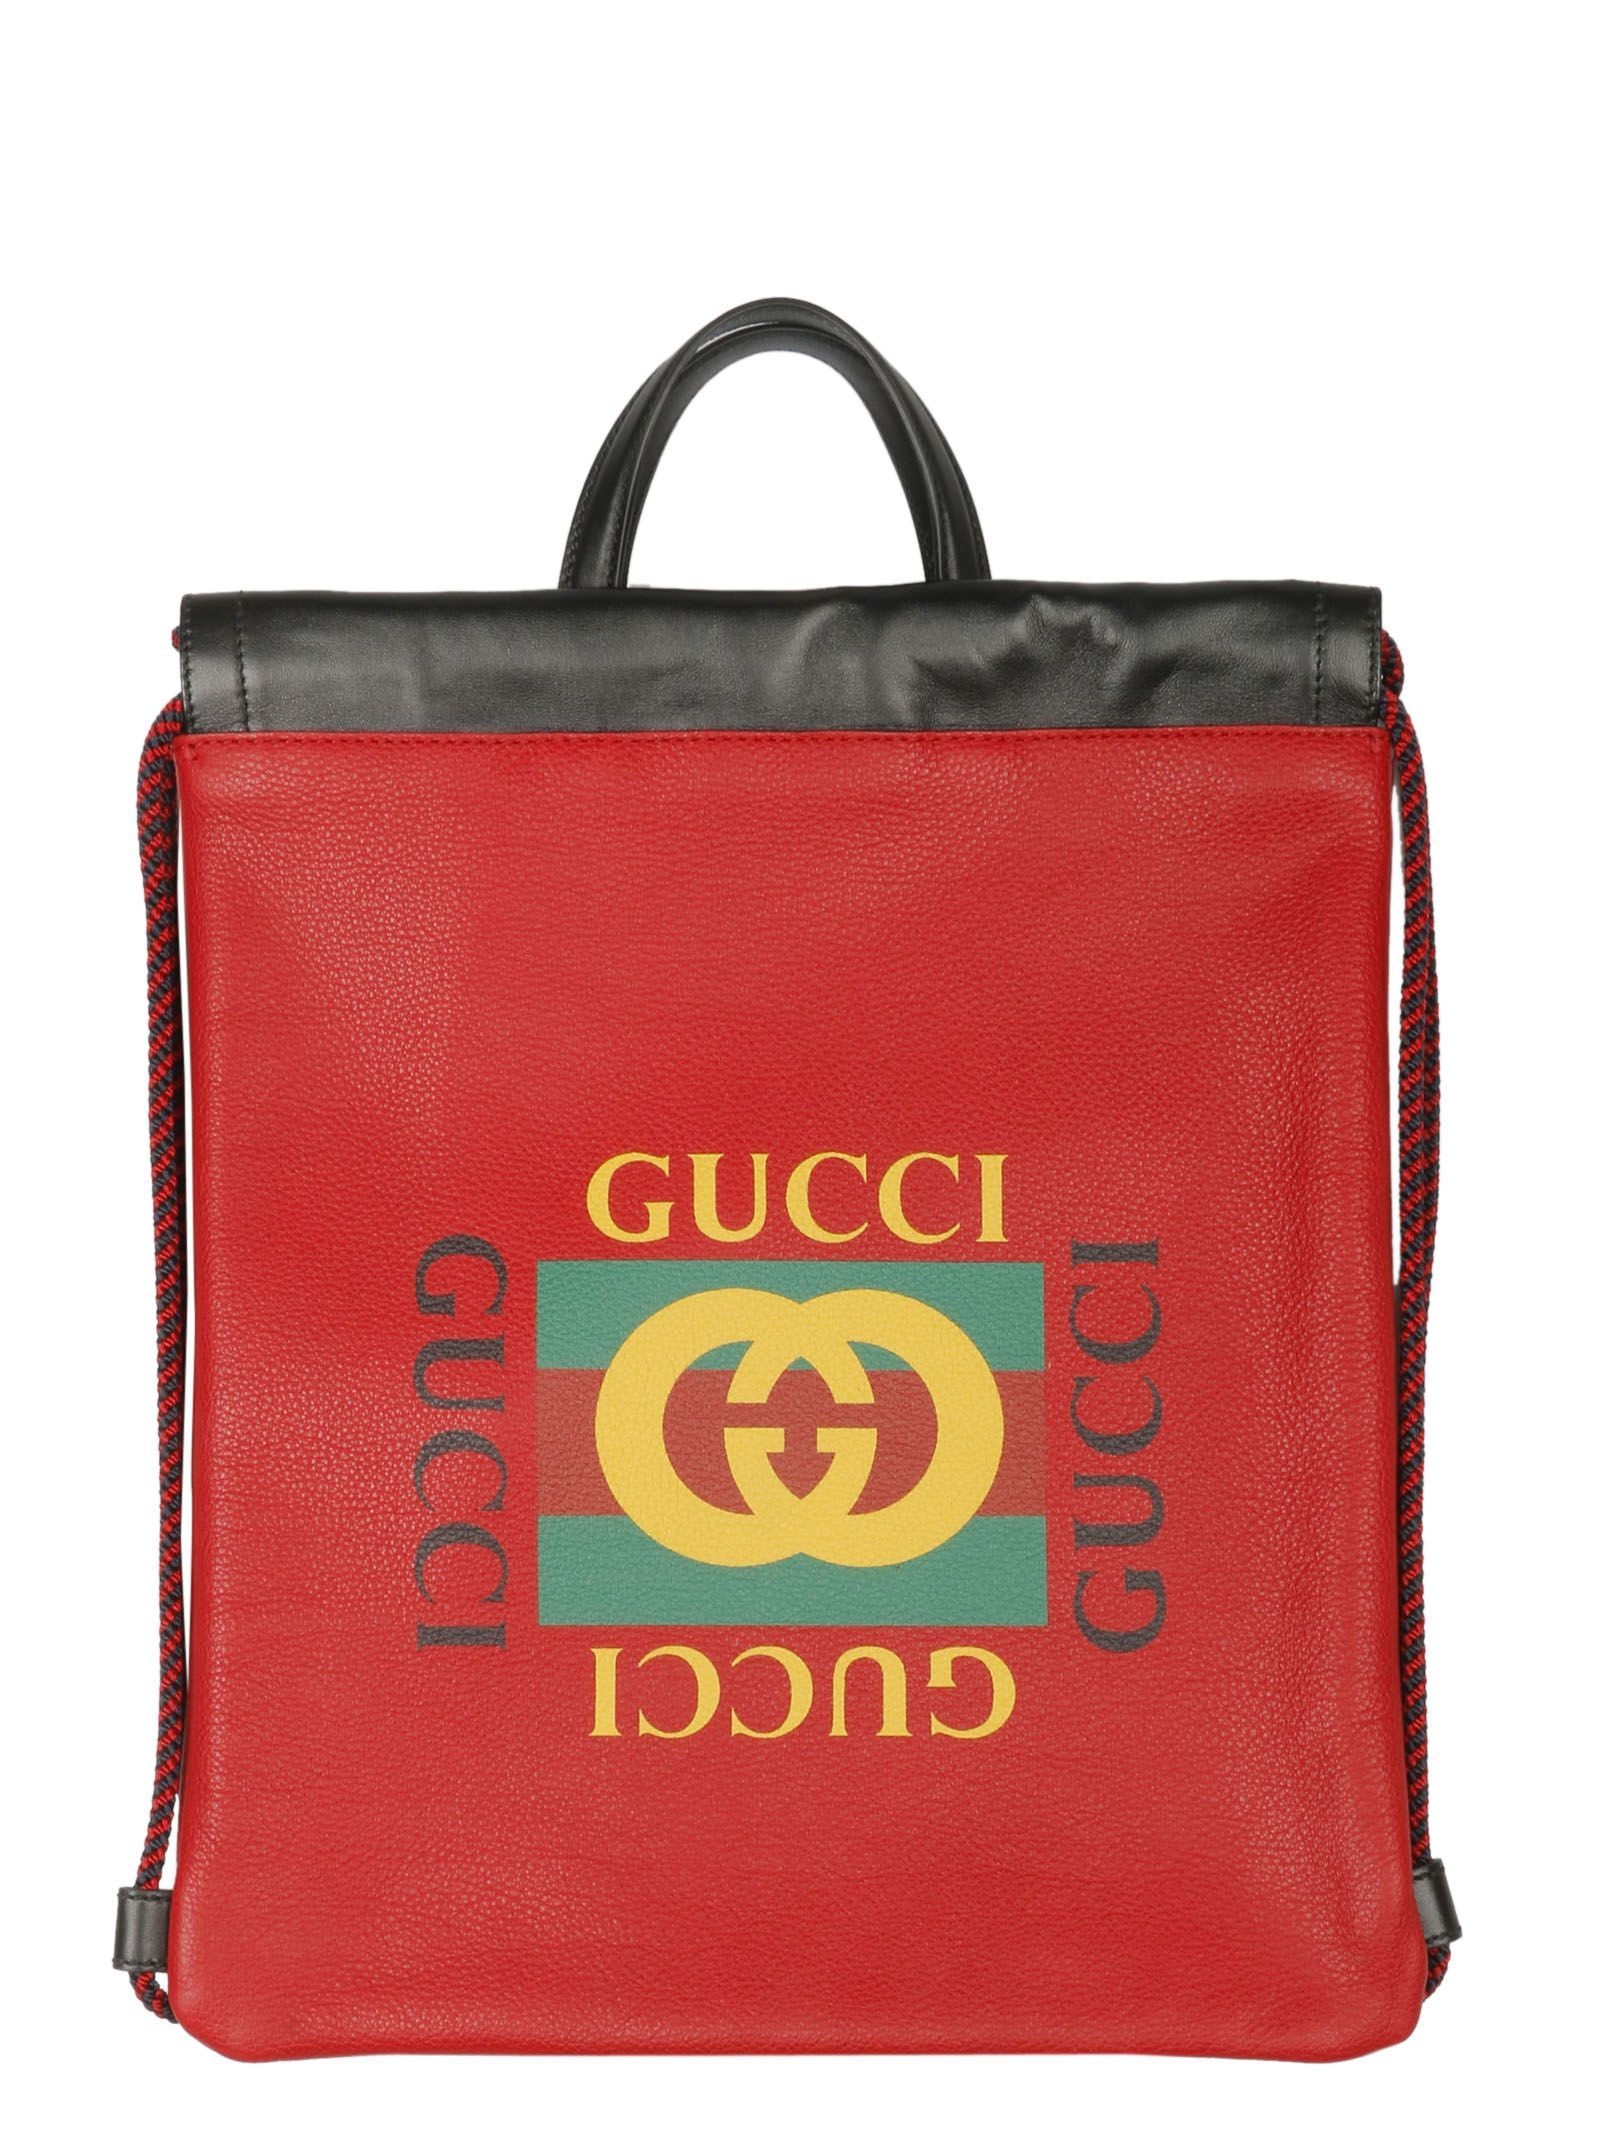 71ae4944da49 GUCCI SMALL DRAWSTRING BACKPACK.  gucci  bags  leather  backpacks ...